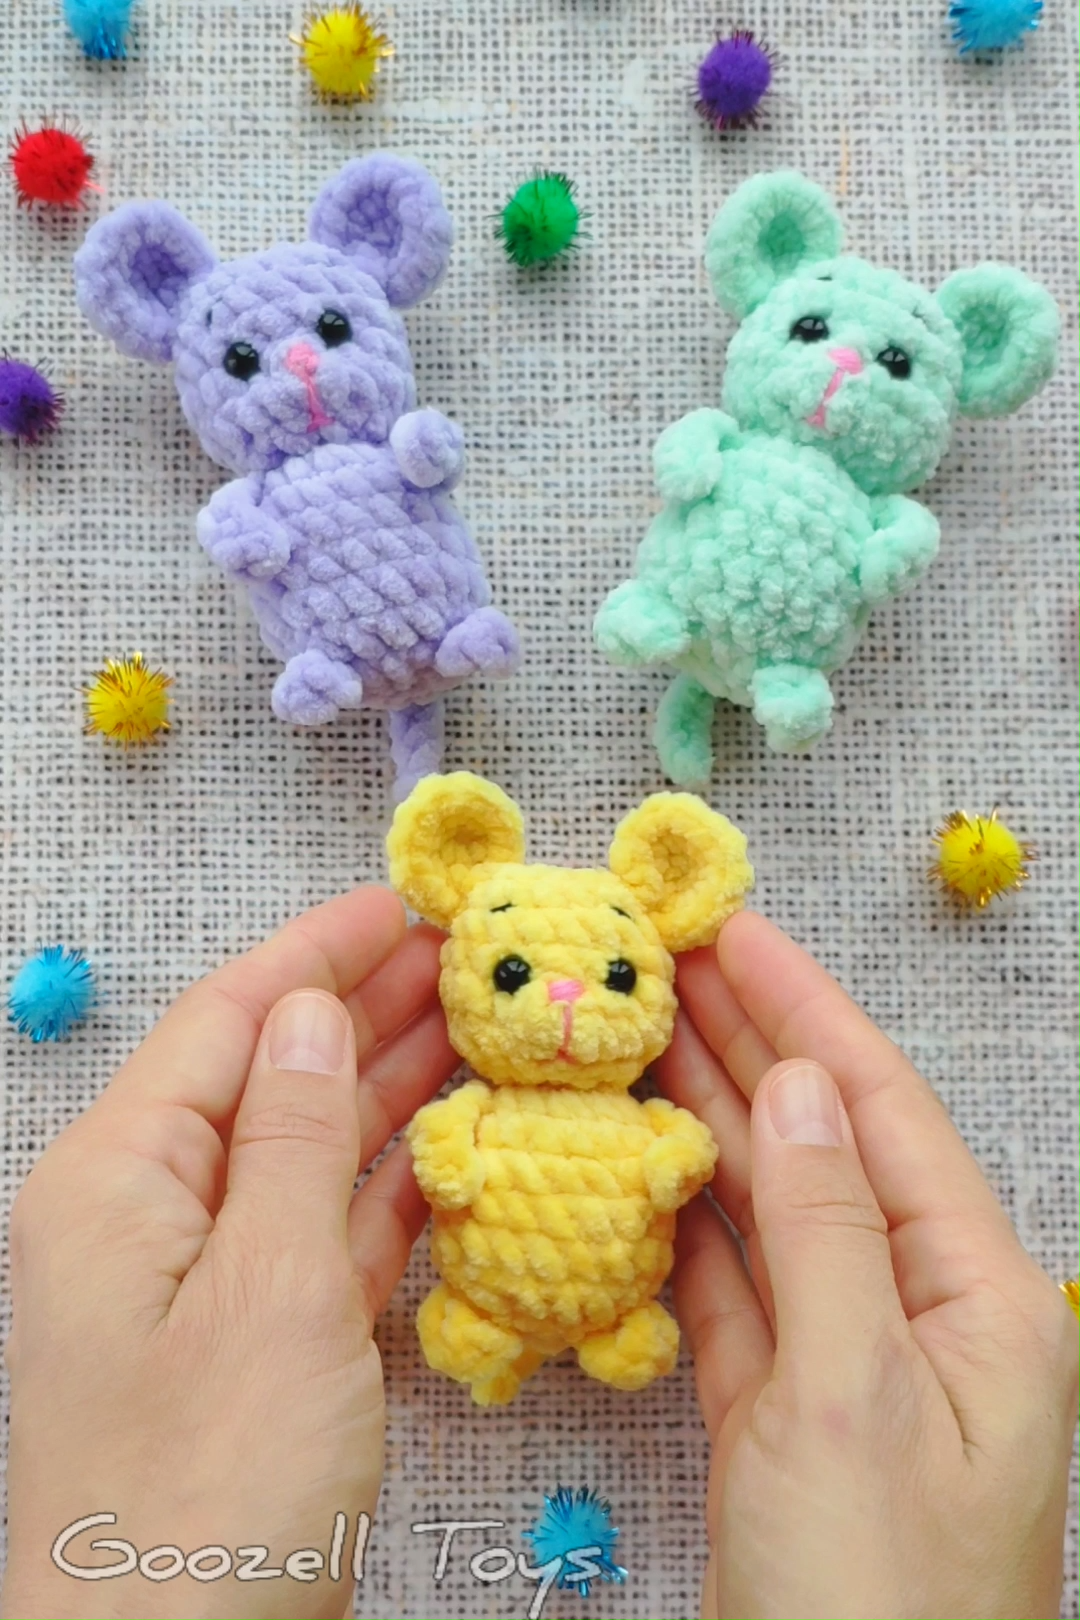 MOUSE CROCHET PATTERN Mini Mouse Amigurumi Pdf pattern Easy crochet pattern free Crochet Christmas